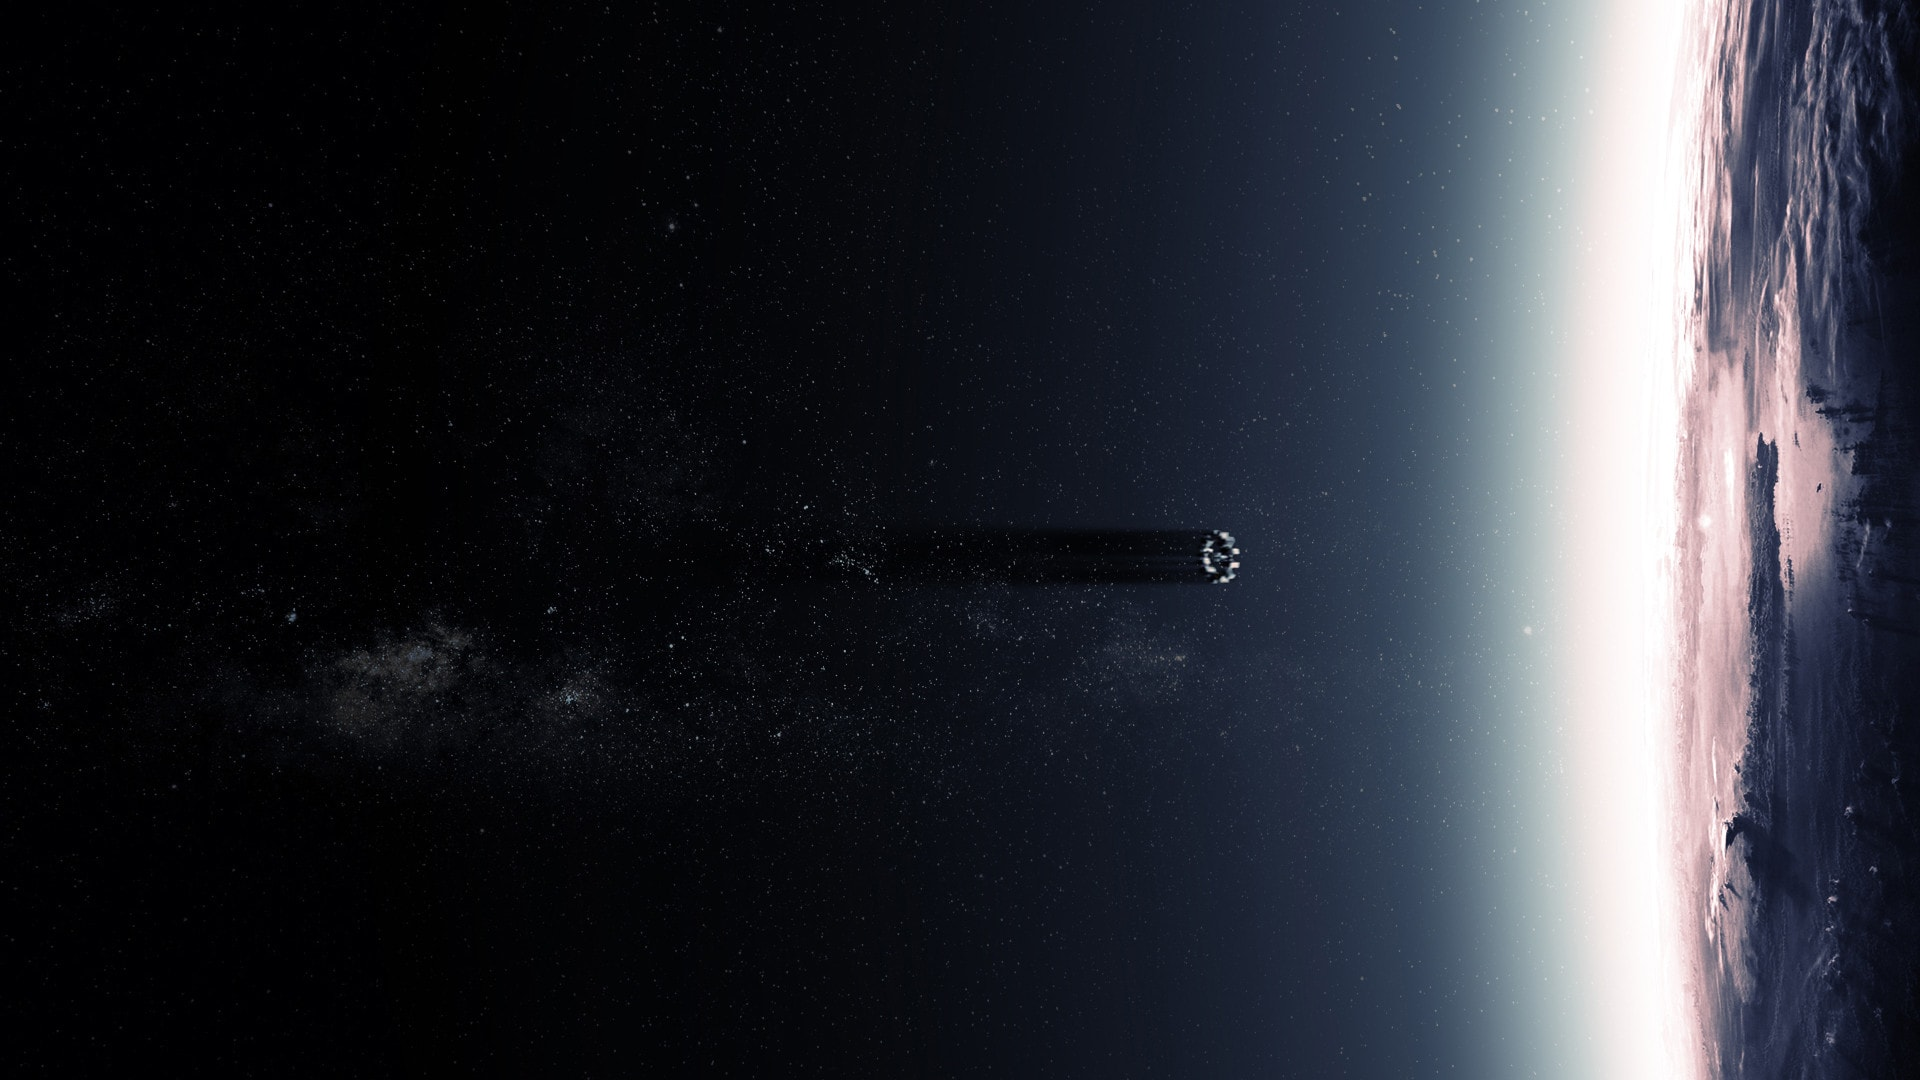 Interstellar Hd Wallpapers 7wallpapersnet